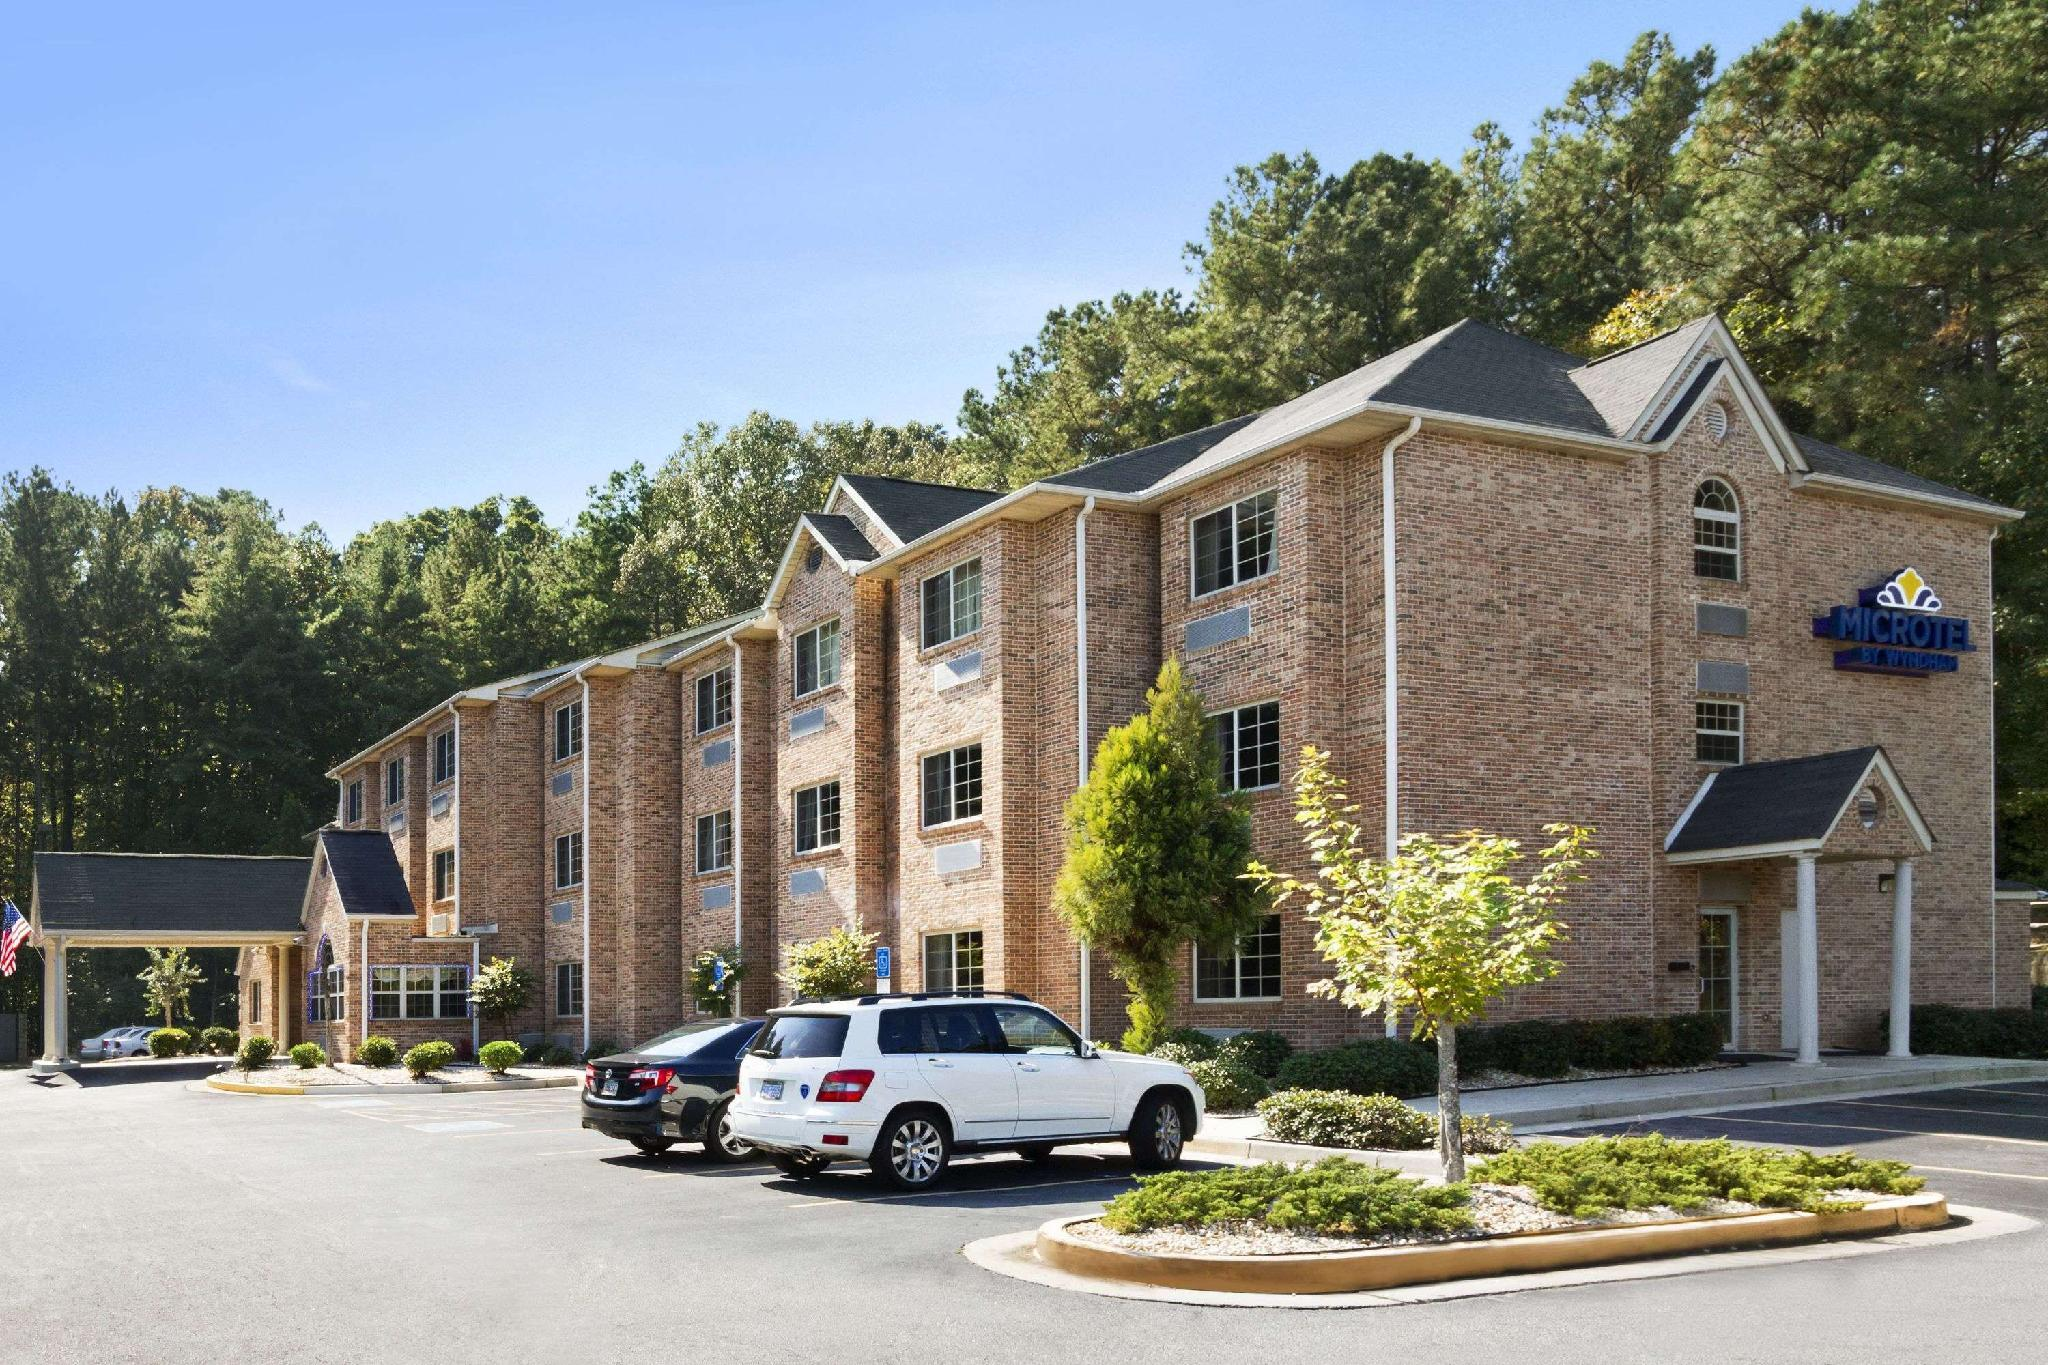 Microtel Inn And Suites By Wyndham Lithonia Stone Mountain